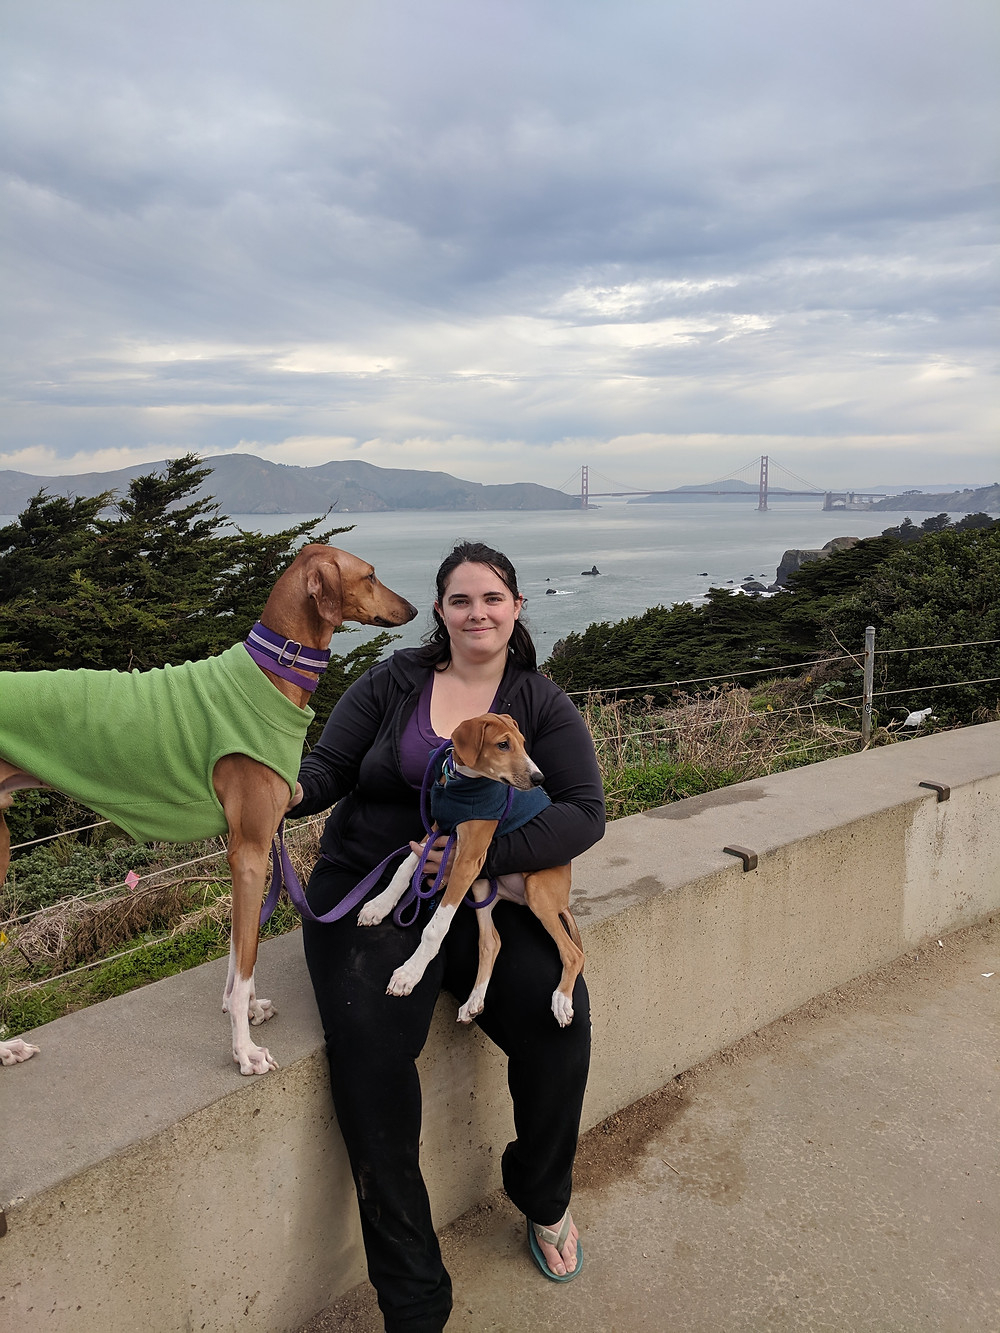 Anubi (15 months) and Amidi (11 weeks) posing in front of the Golden Gate Bridge. Ami did a lot of being carried this trip.